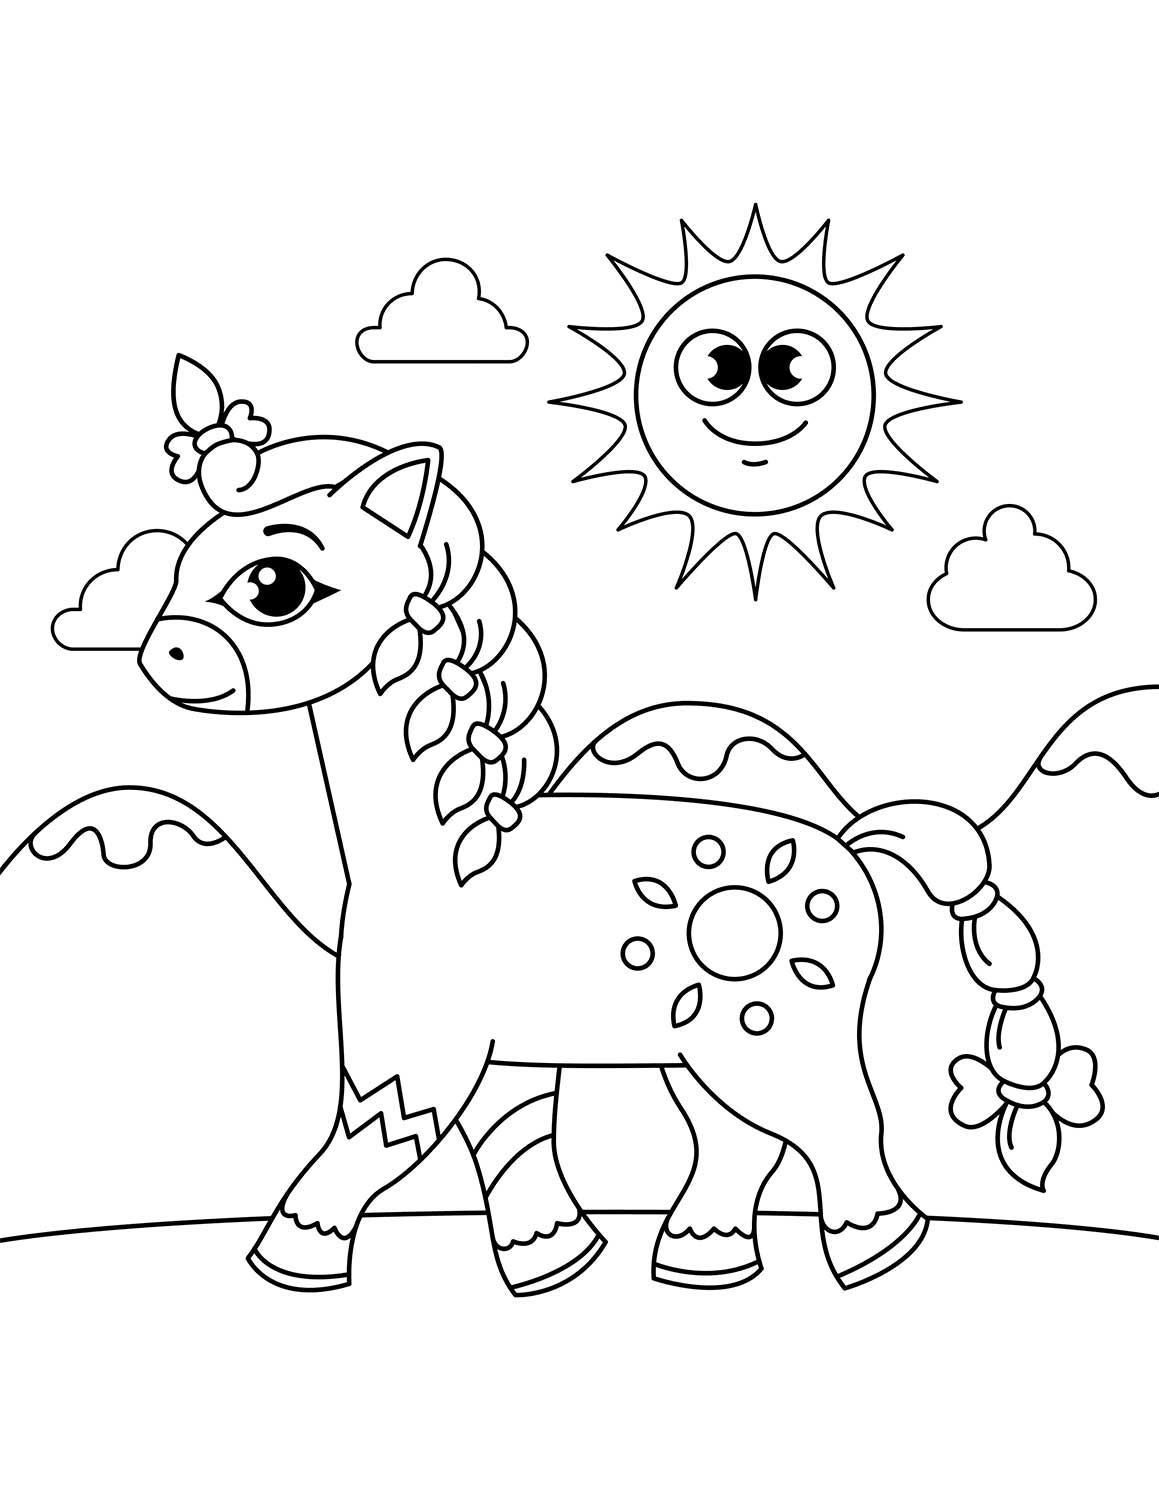 Cute Horse With Braided Mane And Tail Coloring Page Animal Coloring Pages Printable Coloring Book Horse Coloring Pages